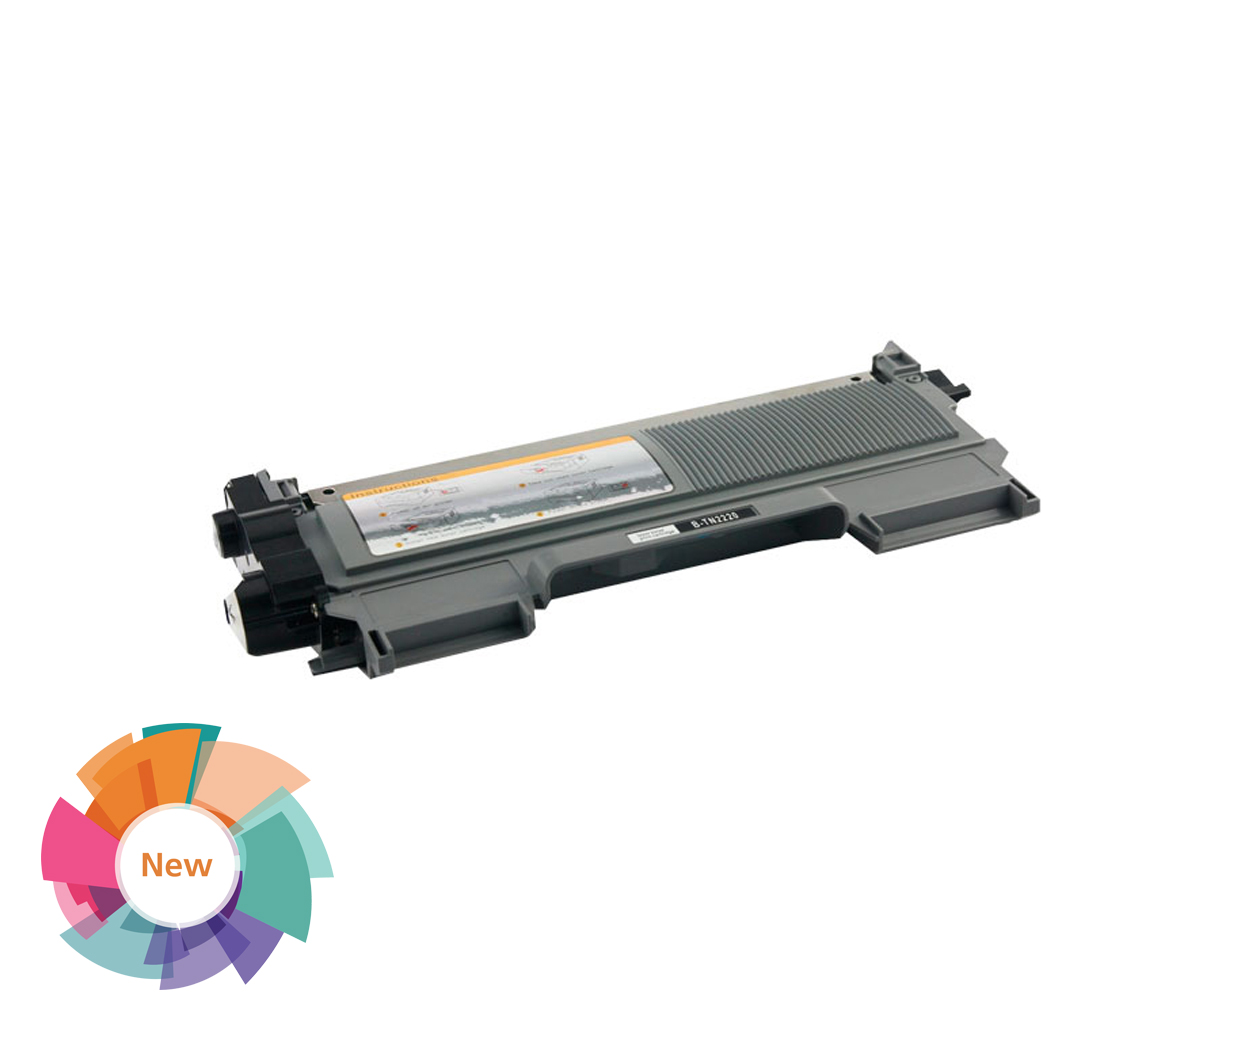 Stationery Clearance - Compatible Brother TN2220 Toner Cartridge